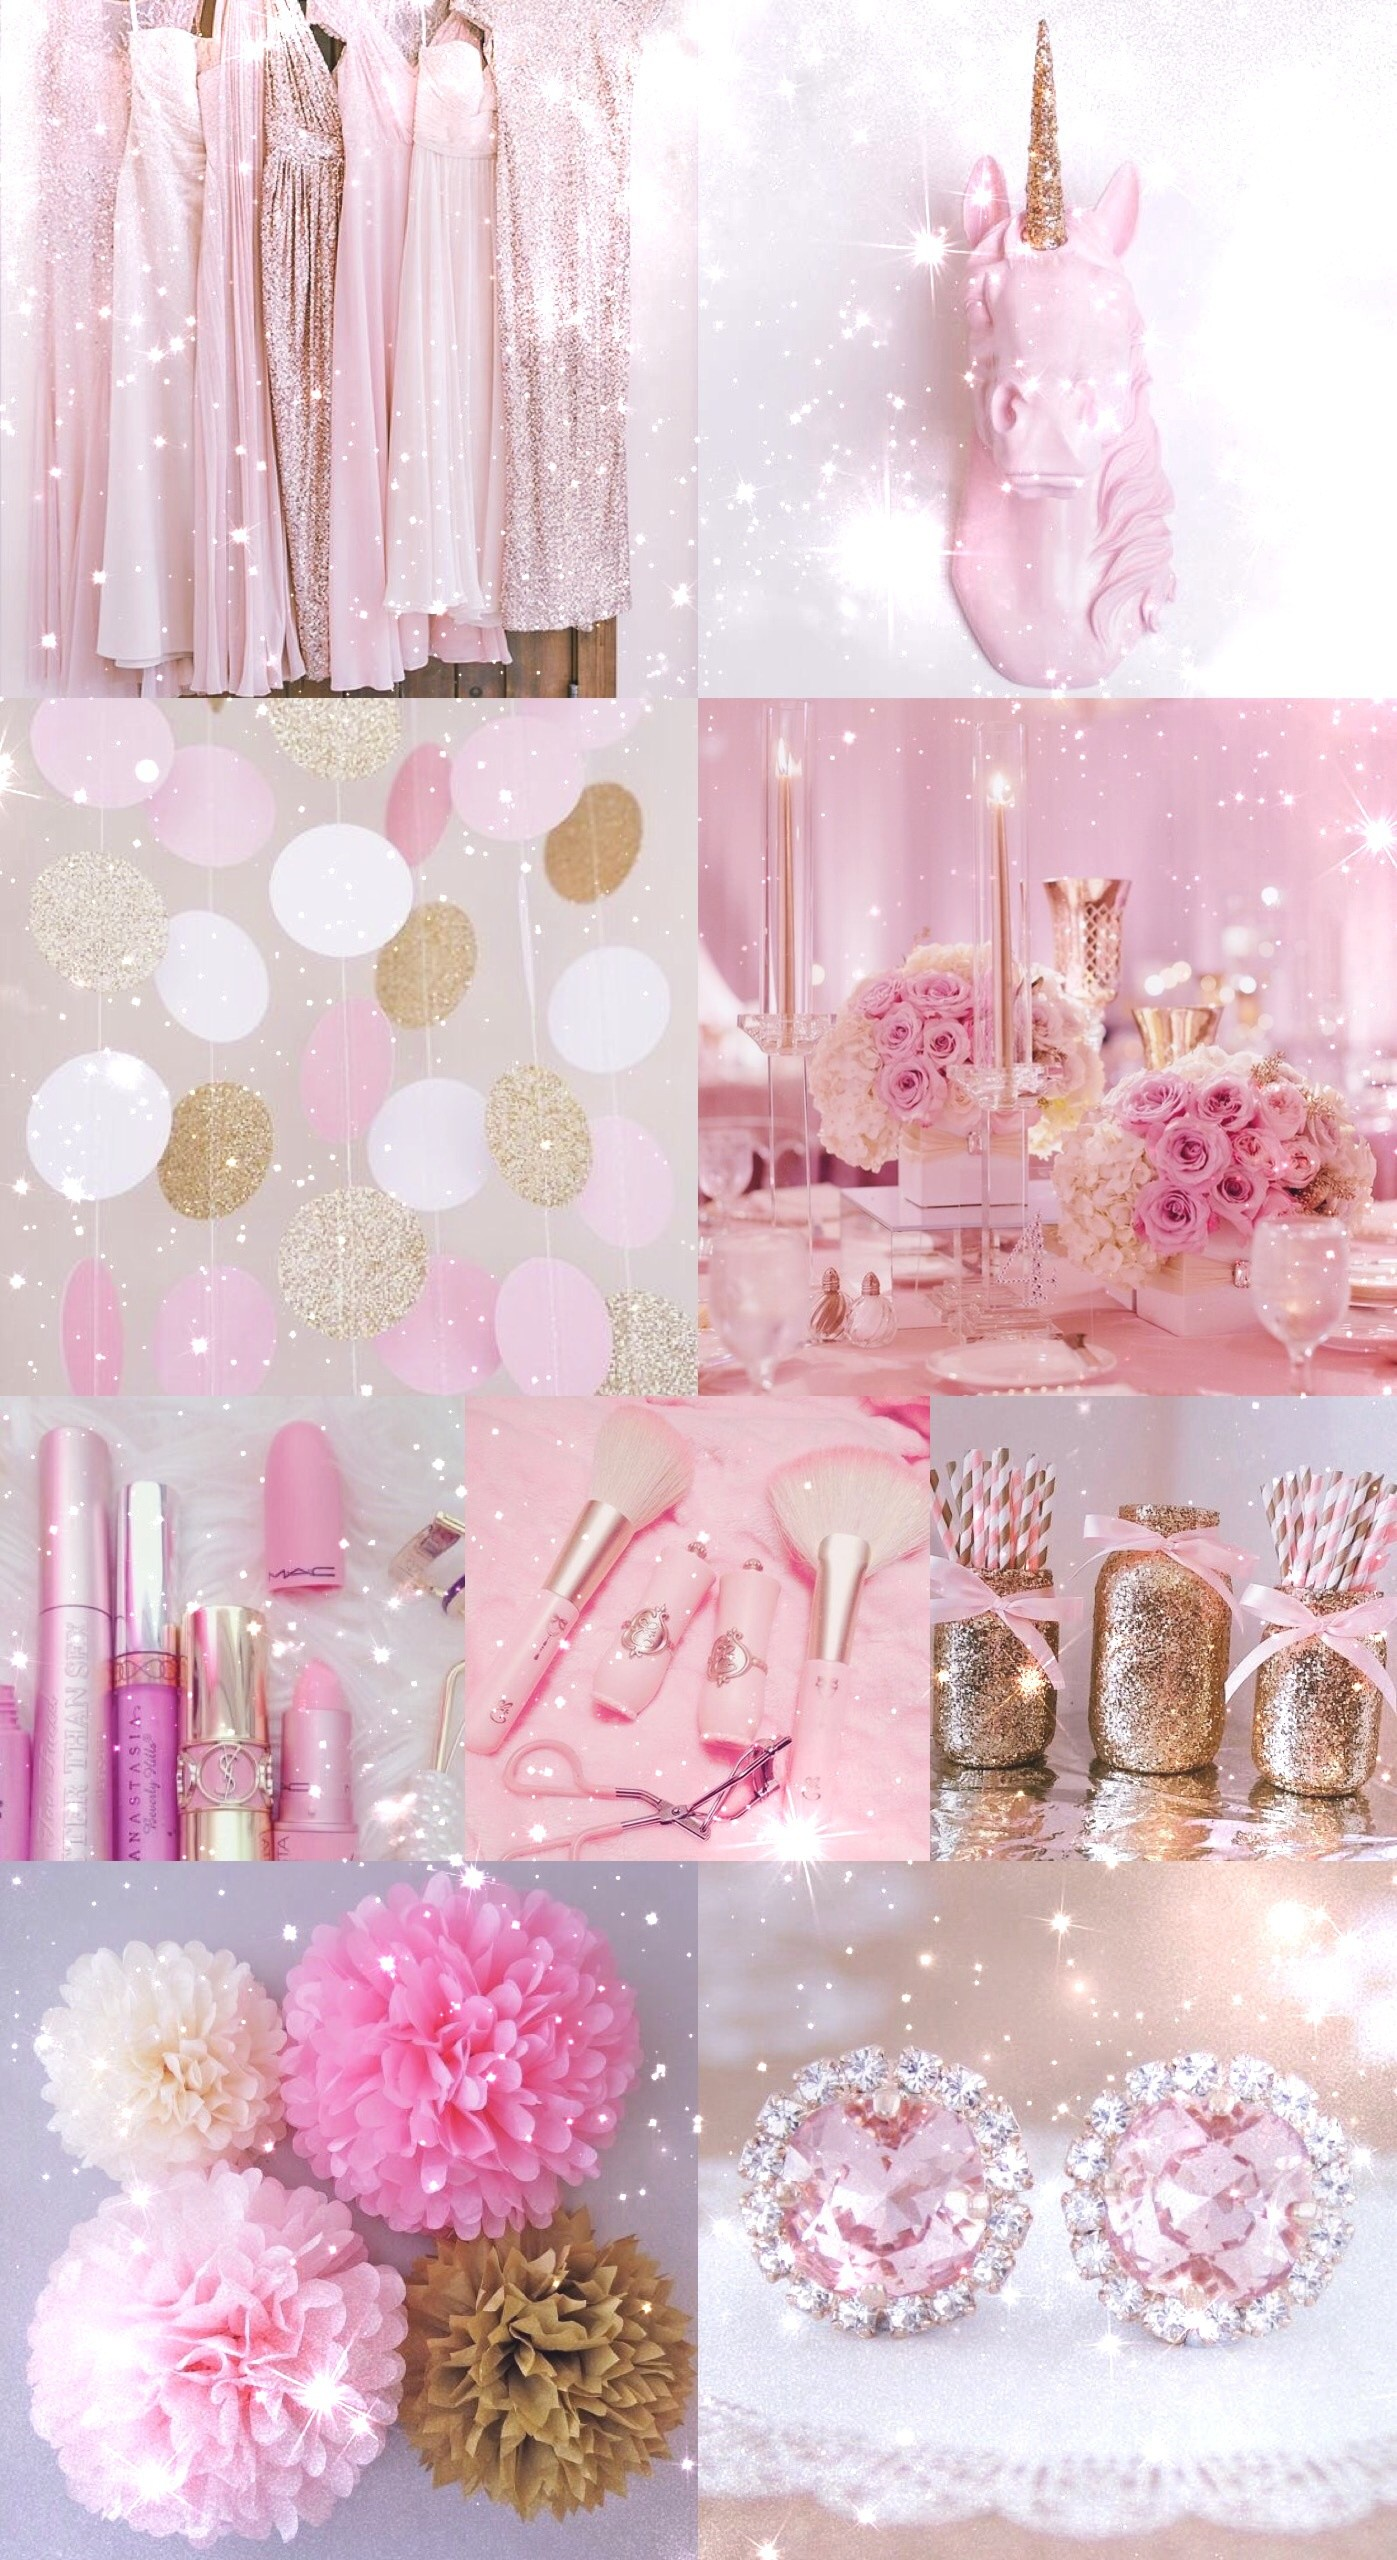 1920x1080 Stars Sparkle Swish Pink Backgrounds For Presentation